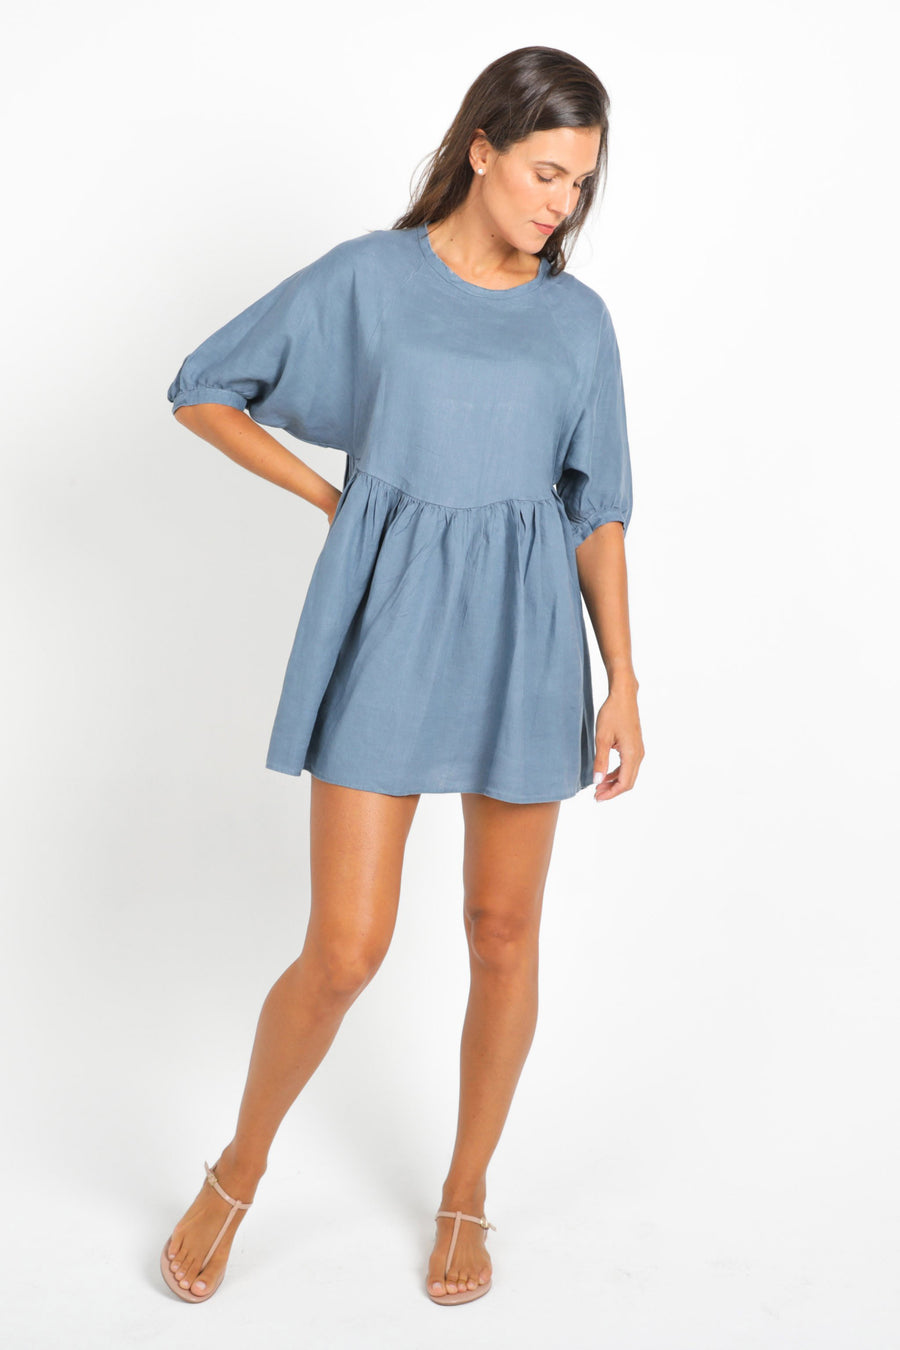 Alcala Linen Short Dress in Petrol